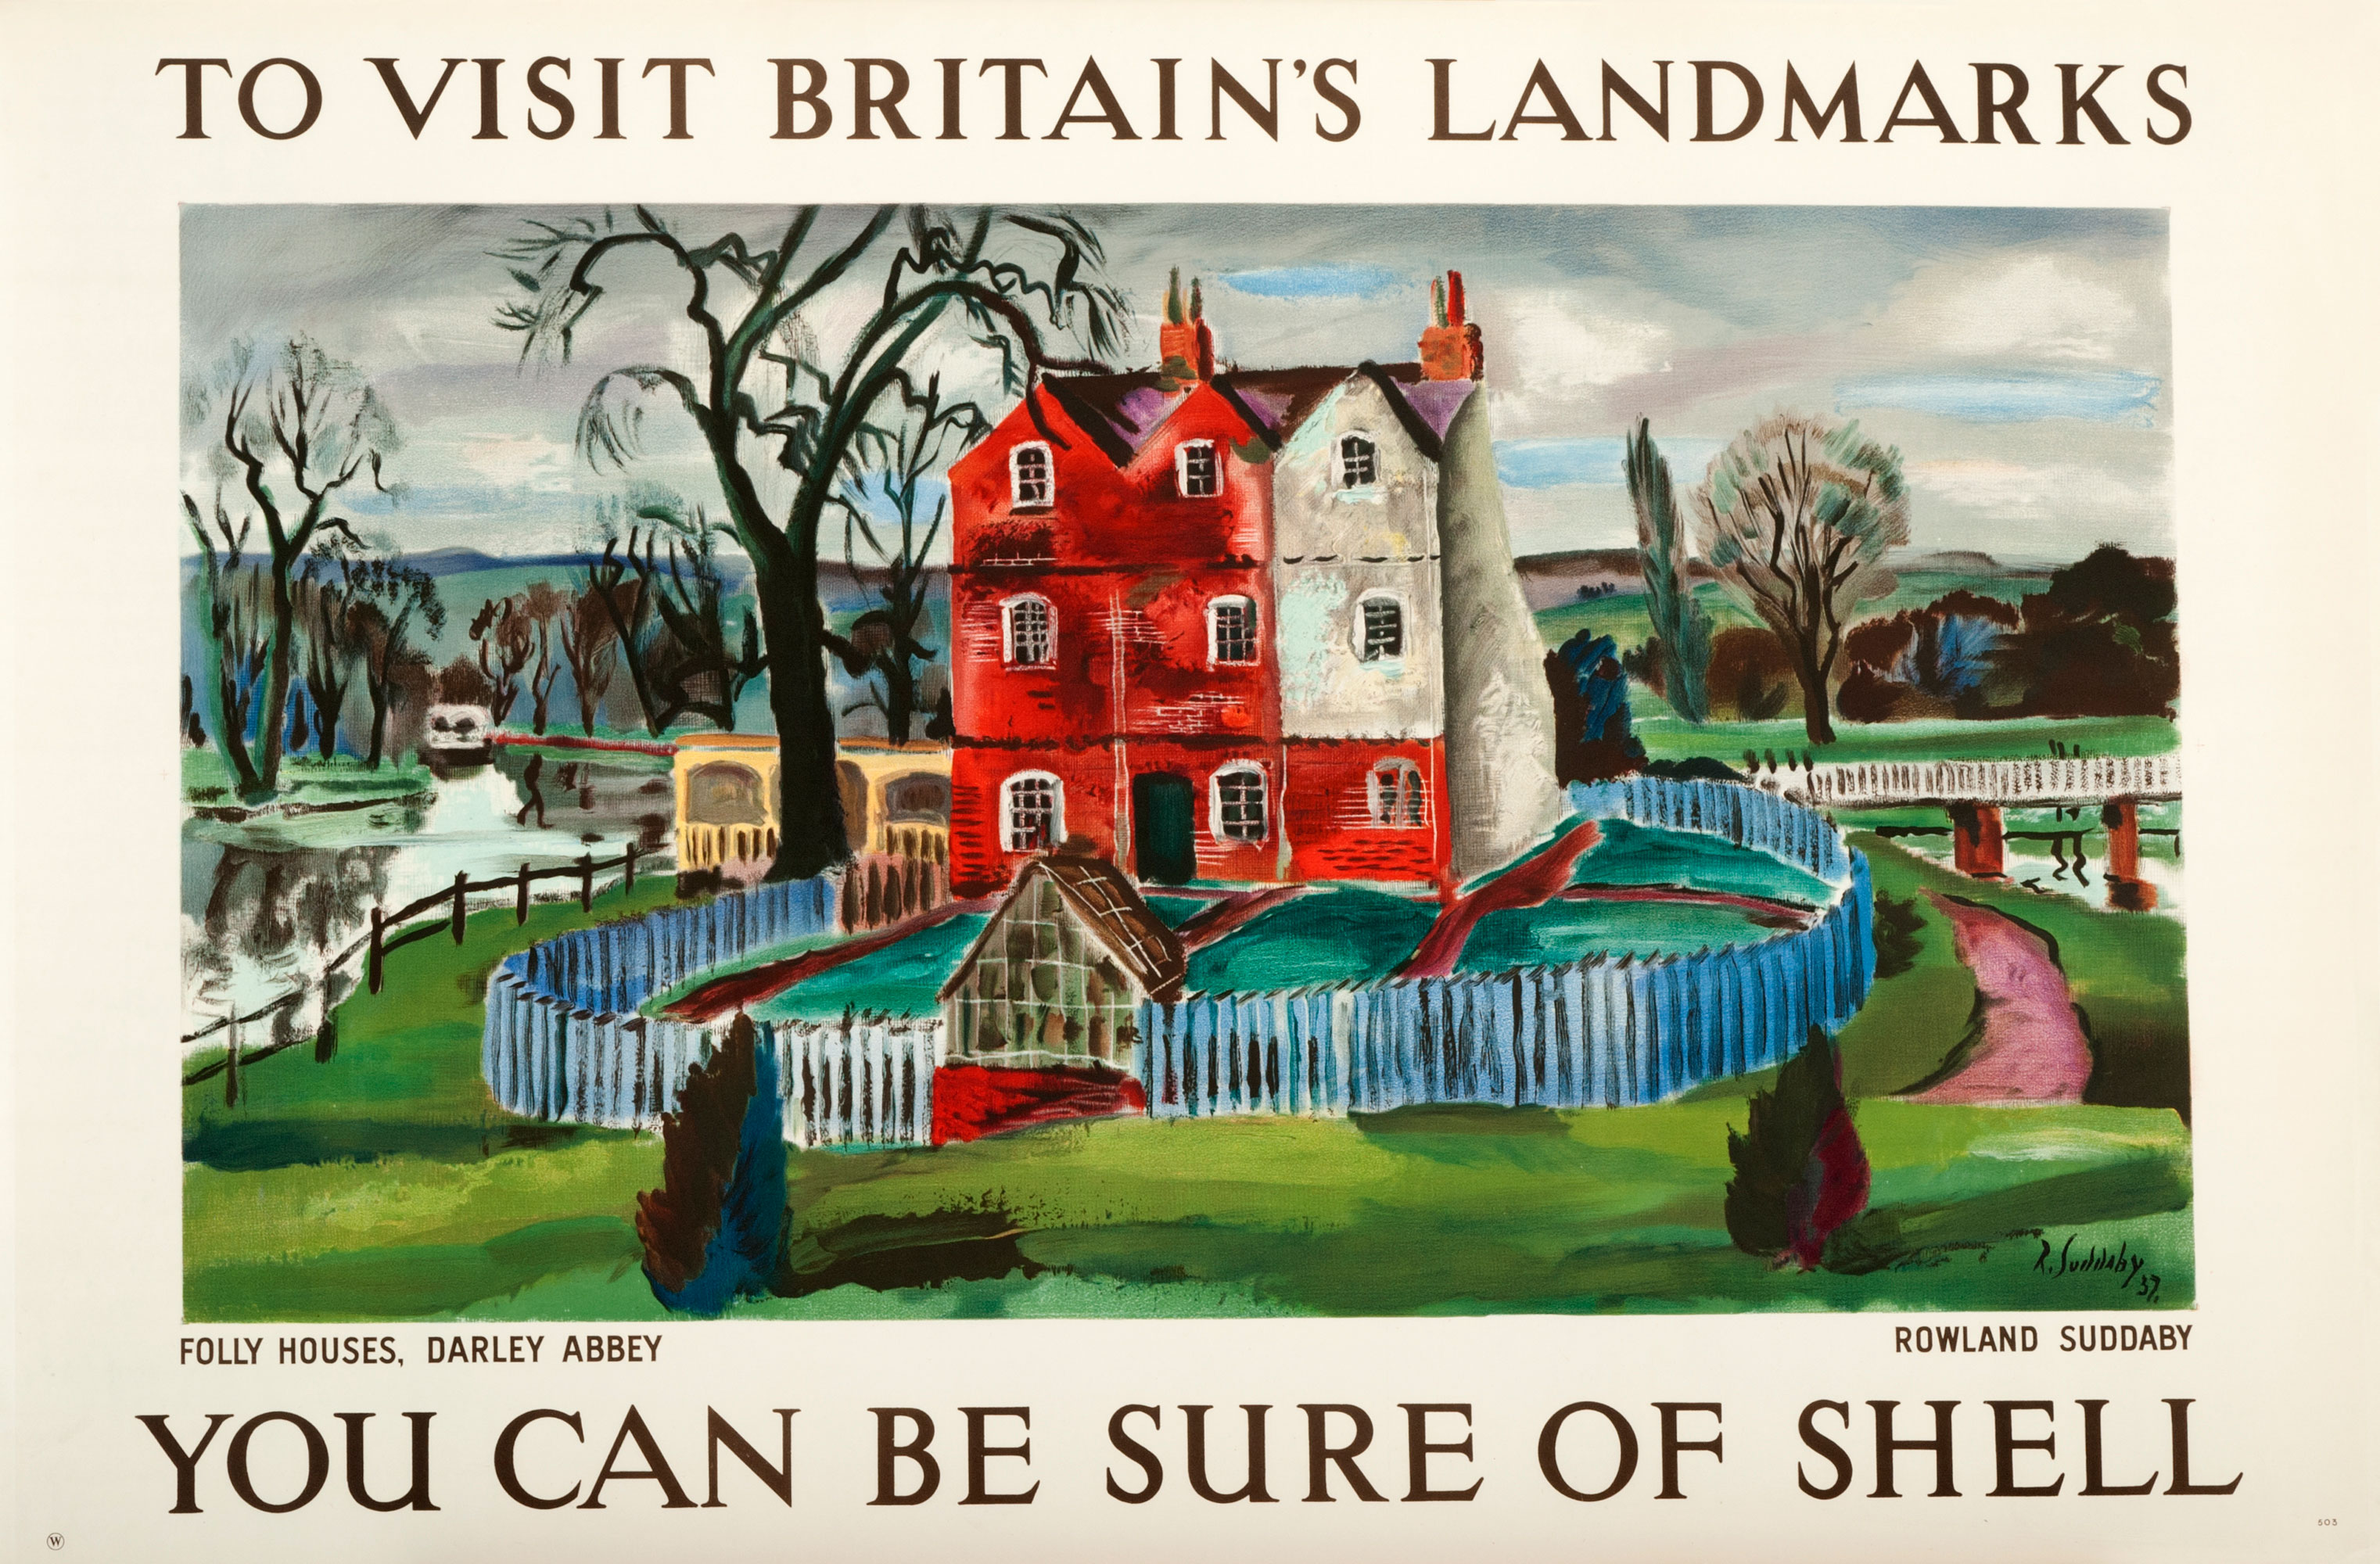 Shell poster number 503, Folly Houses, Darley Abbey by Rowland Suddaby. Landscape painting of Folly Houses at Darley Abbey.